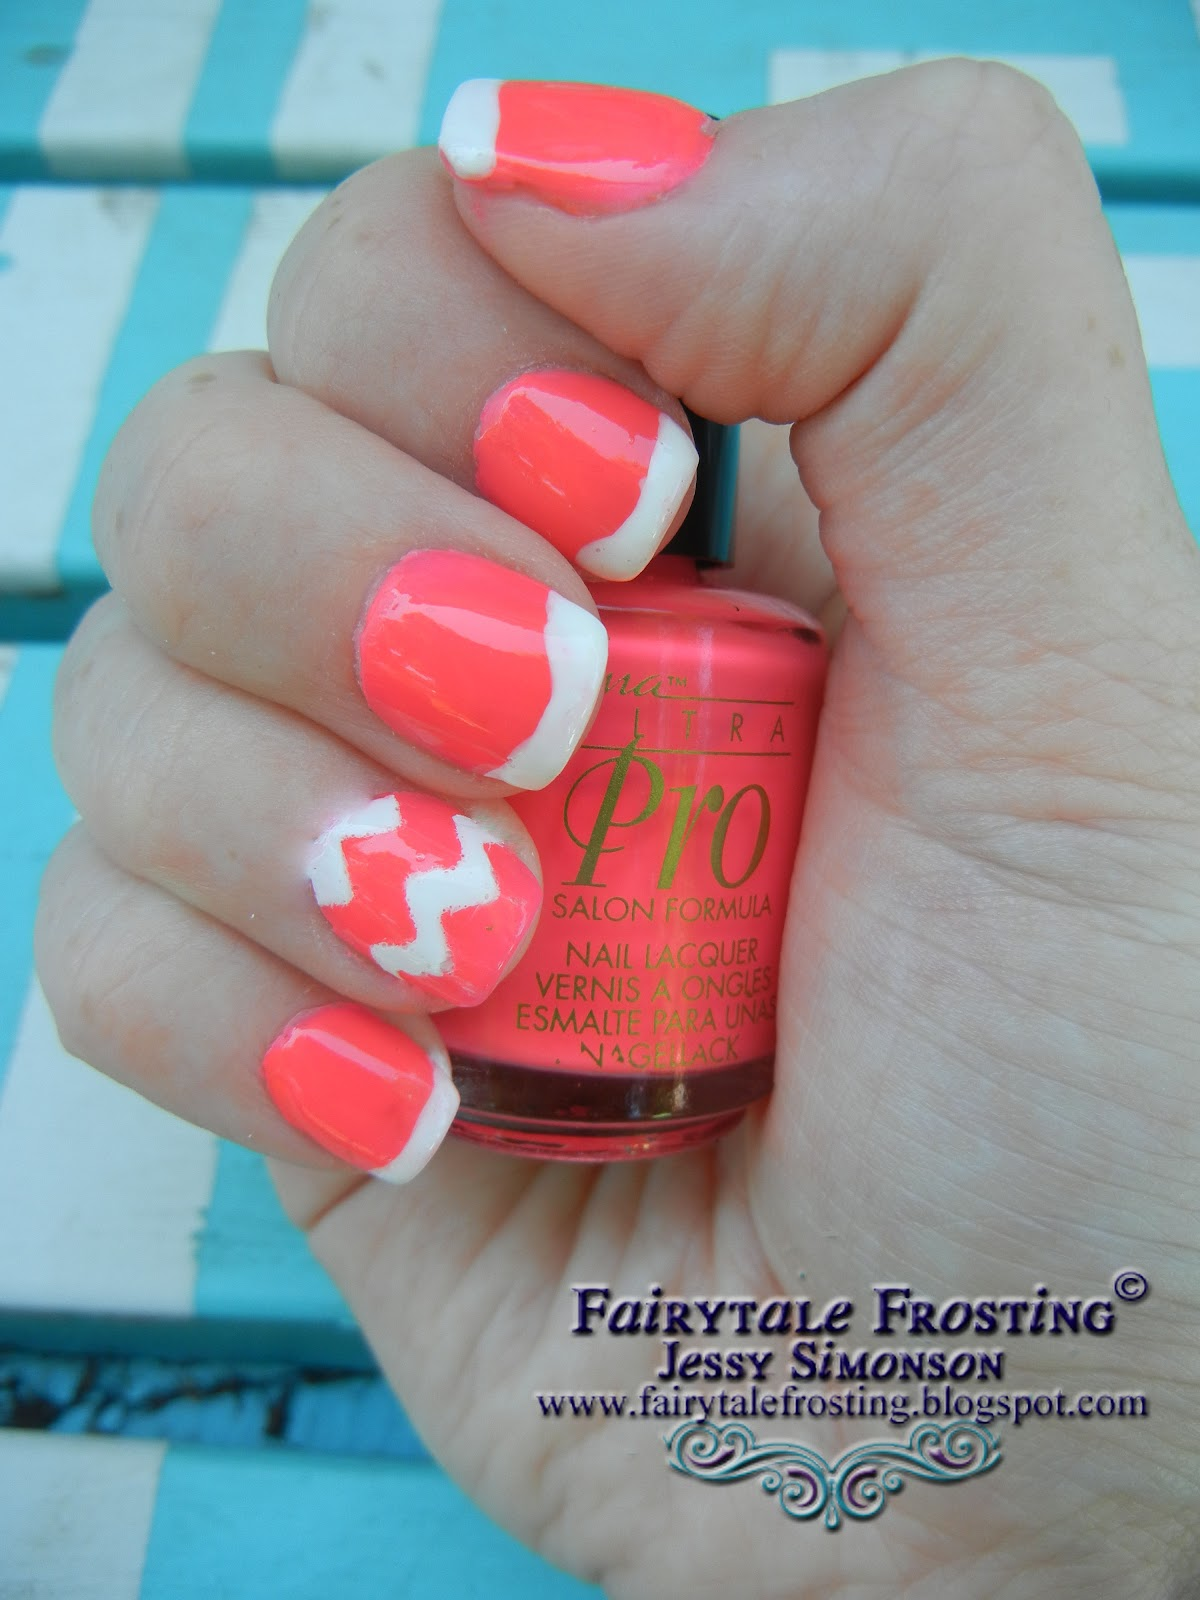 Fairytale Frosting: Pink and White Chevron Nail Art